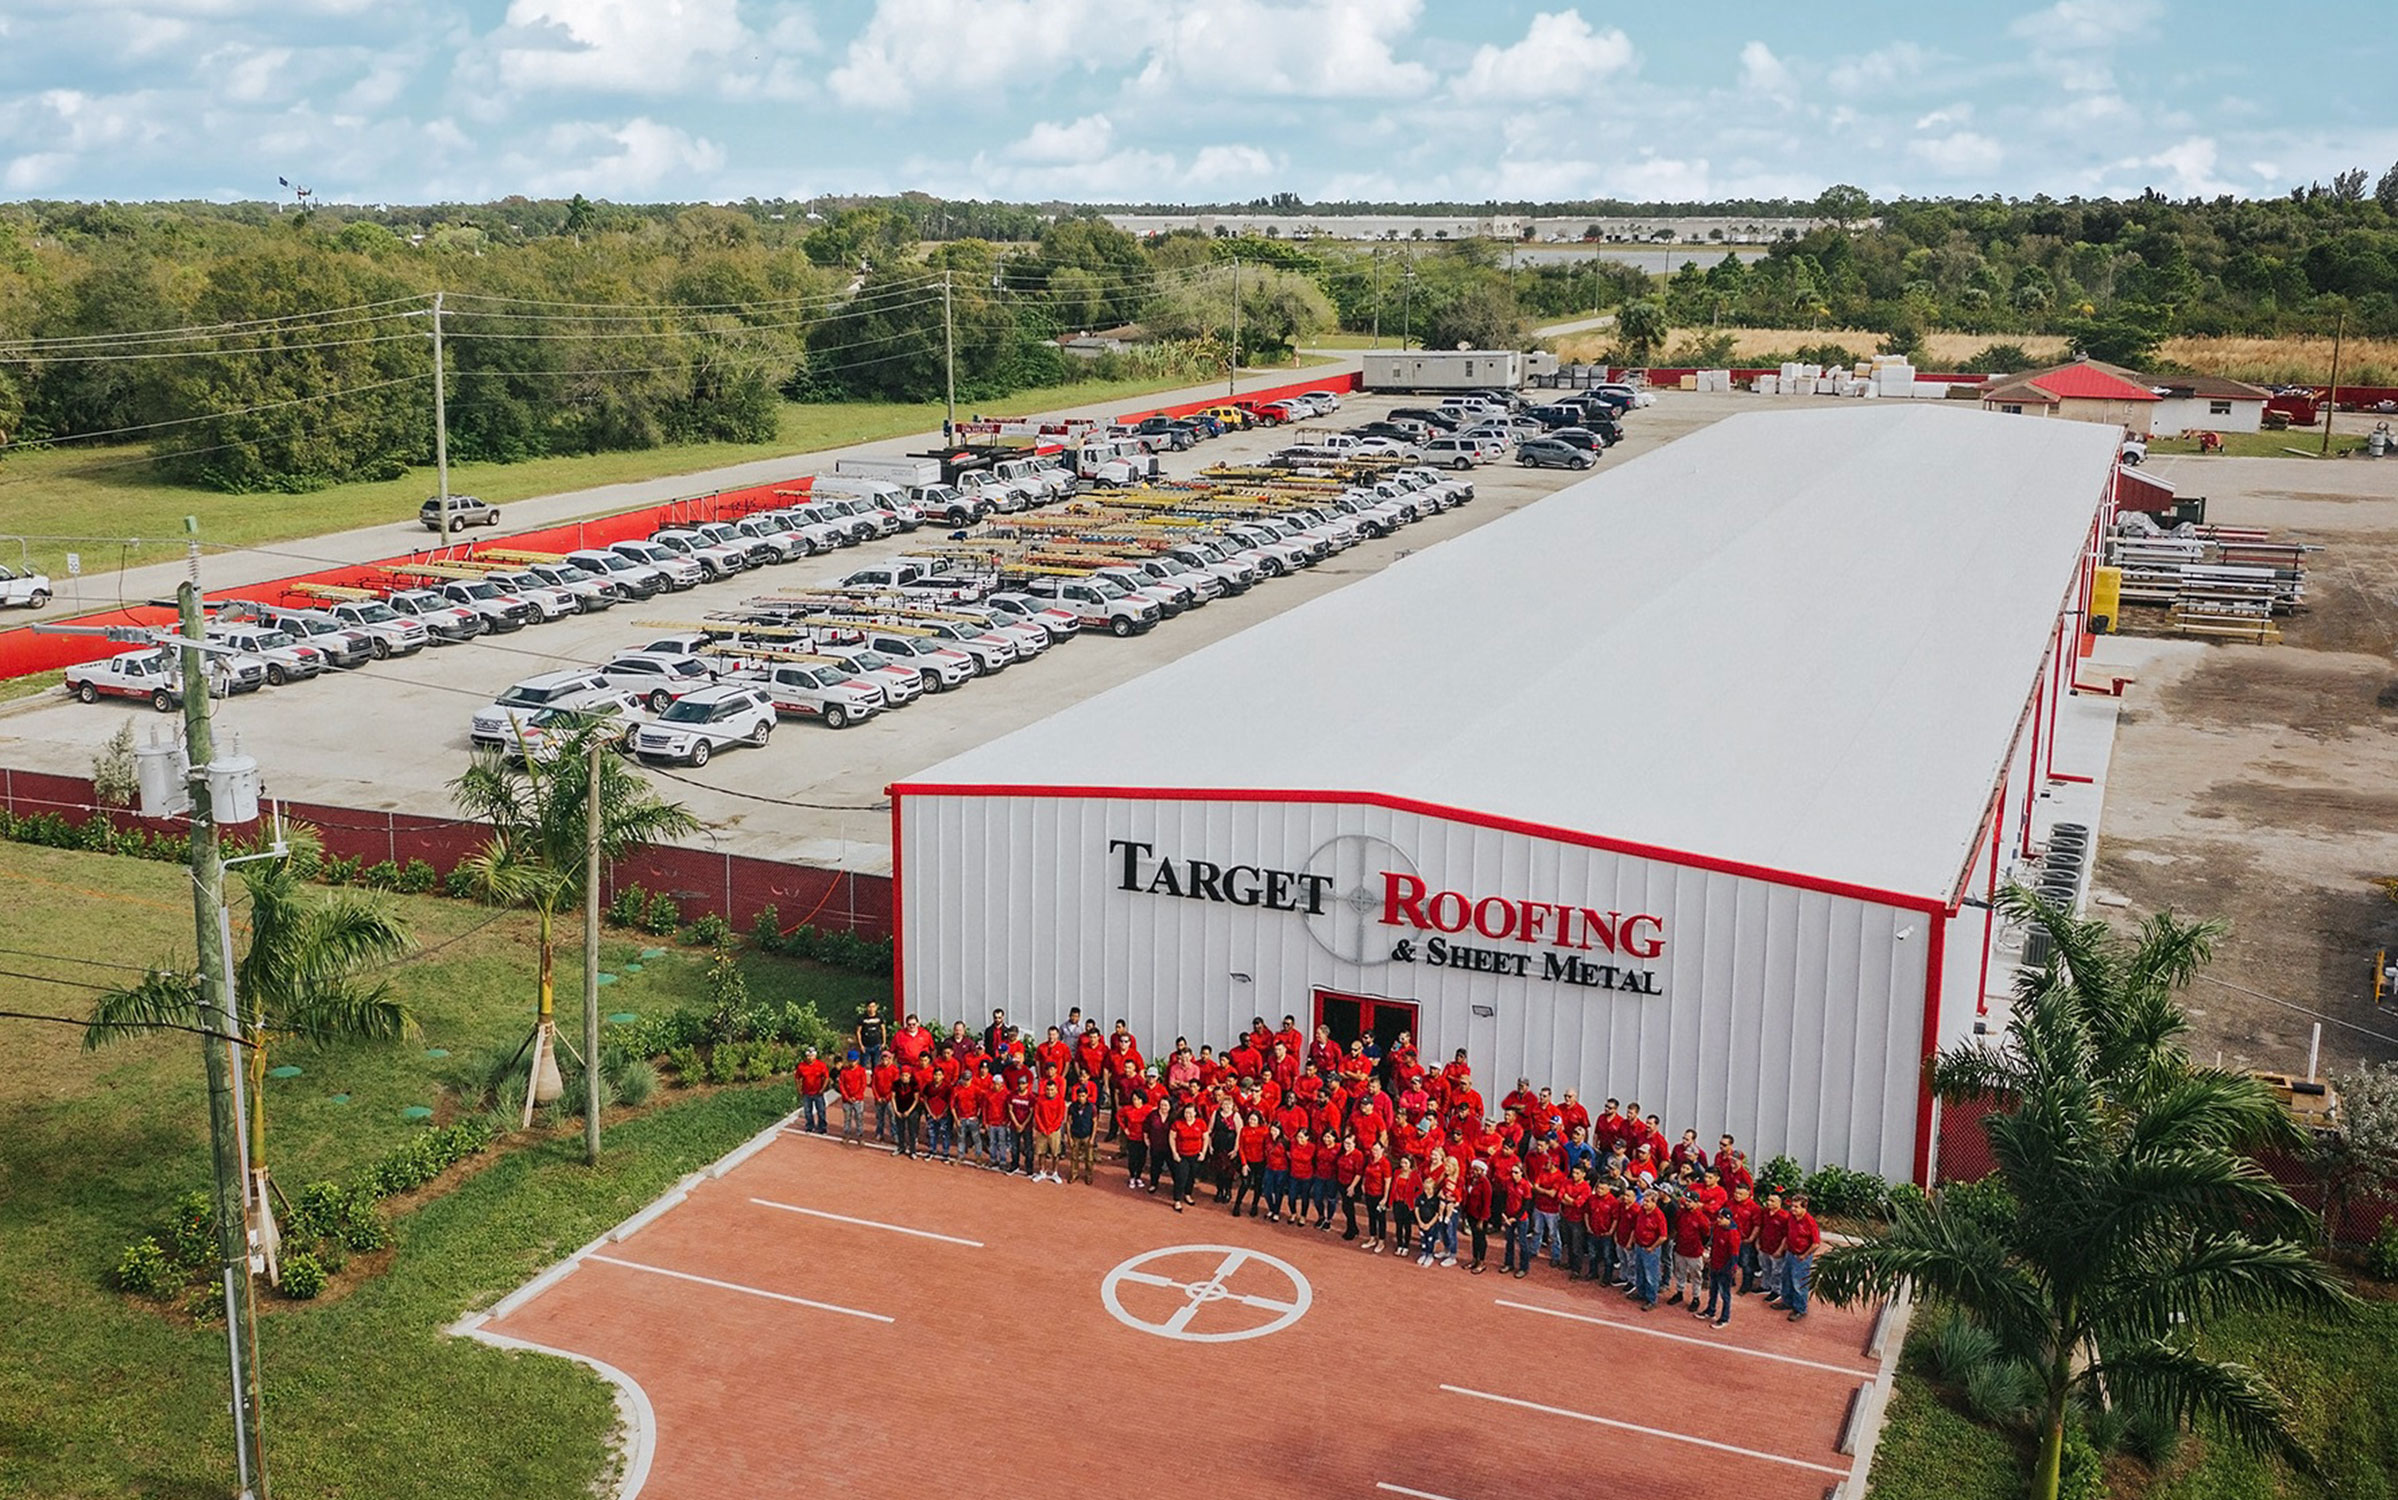 Target Roofing Drone Shot of Employees Standing in Front of Building